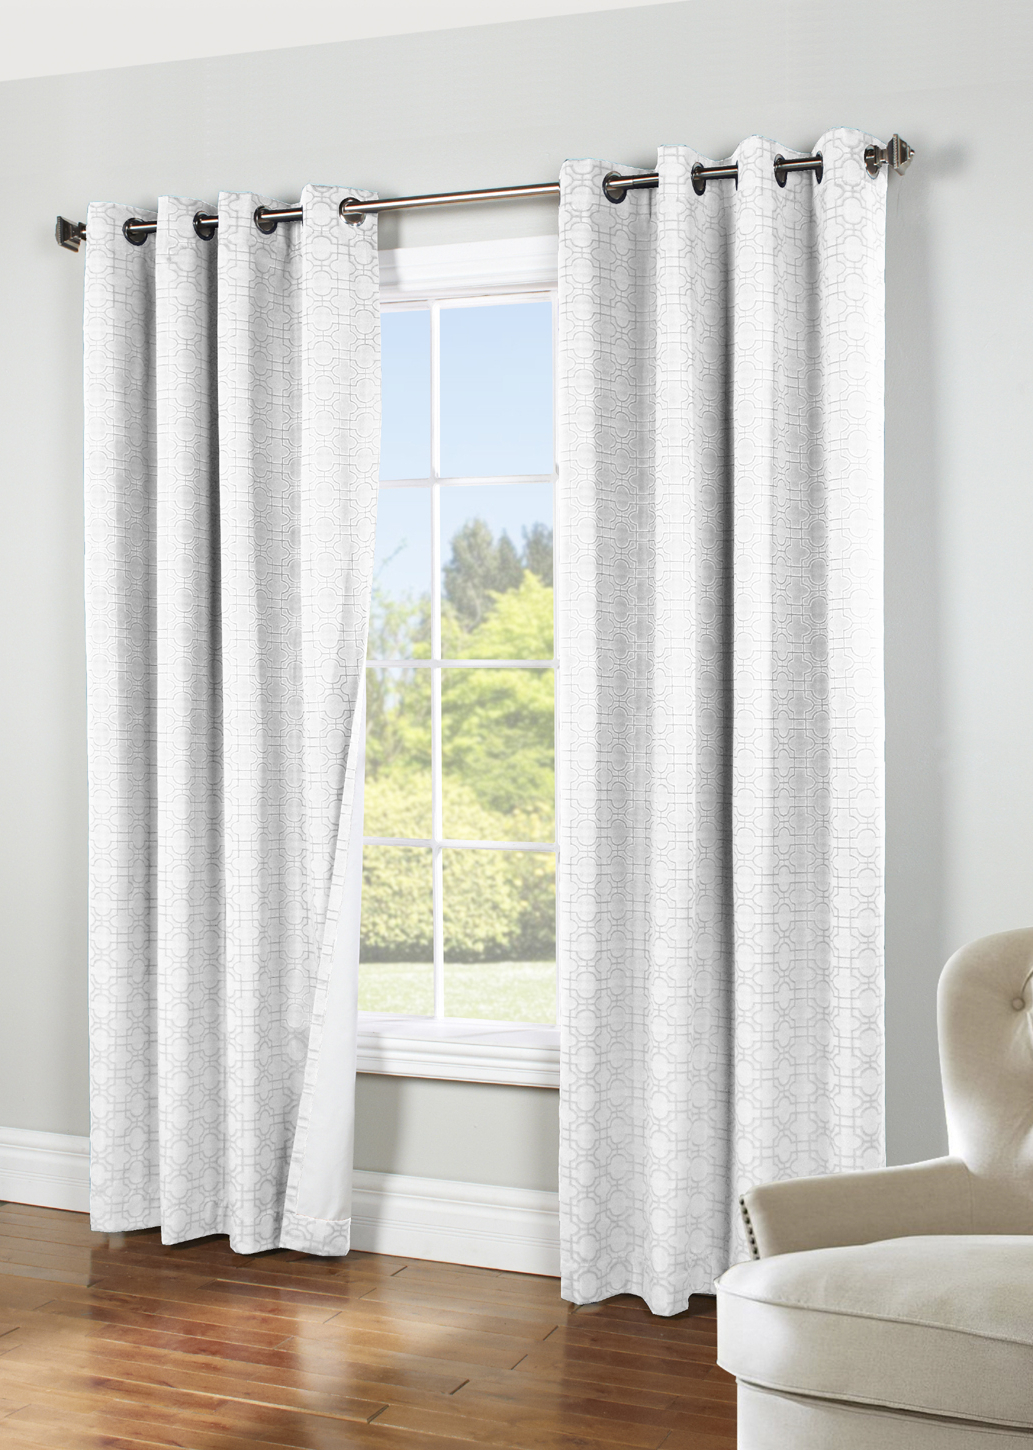 Irongate Insulated Blackout Grommet Curtain Panel – Thermaplus Throughout Fashionable Blackout Grommet Curtain Panels (View 14 of 20)